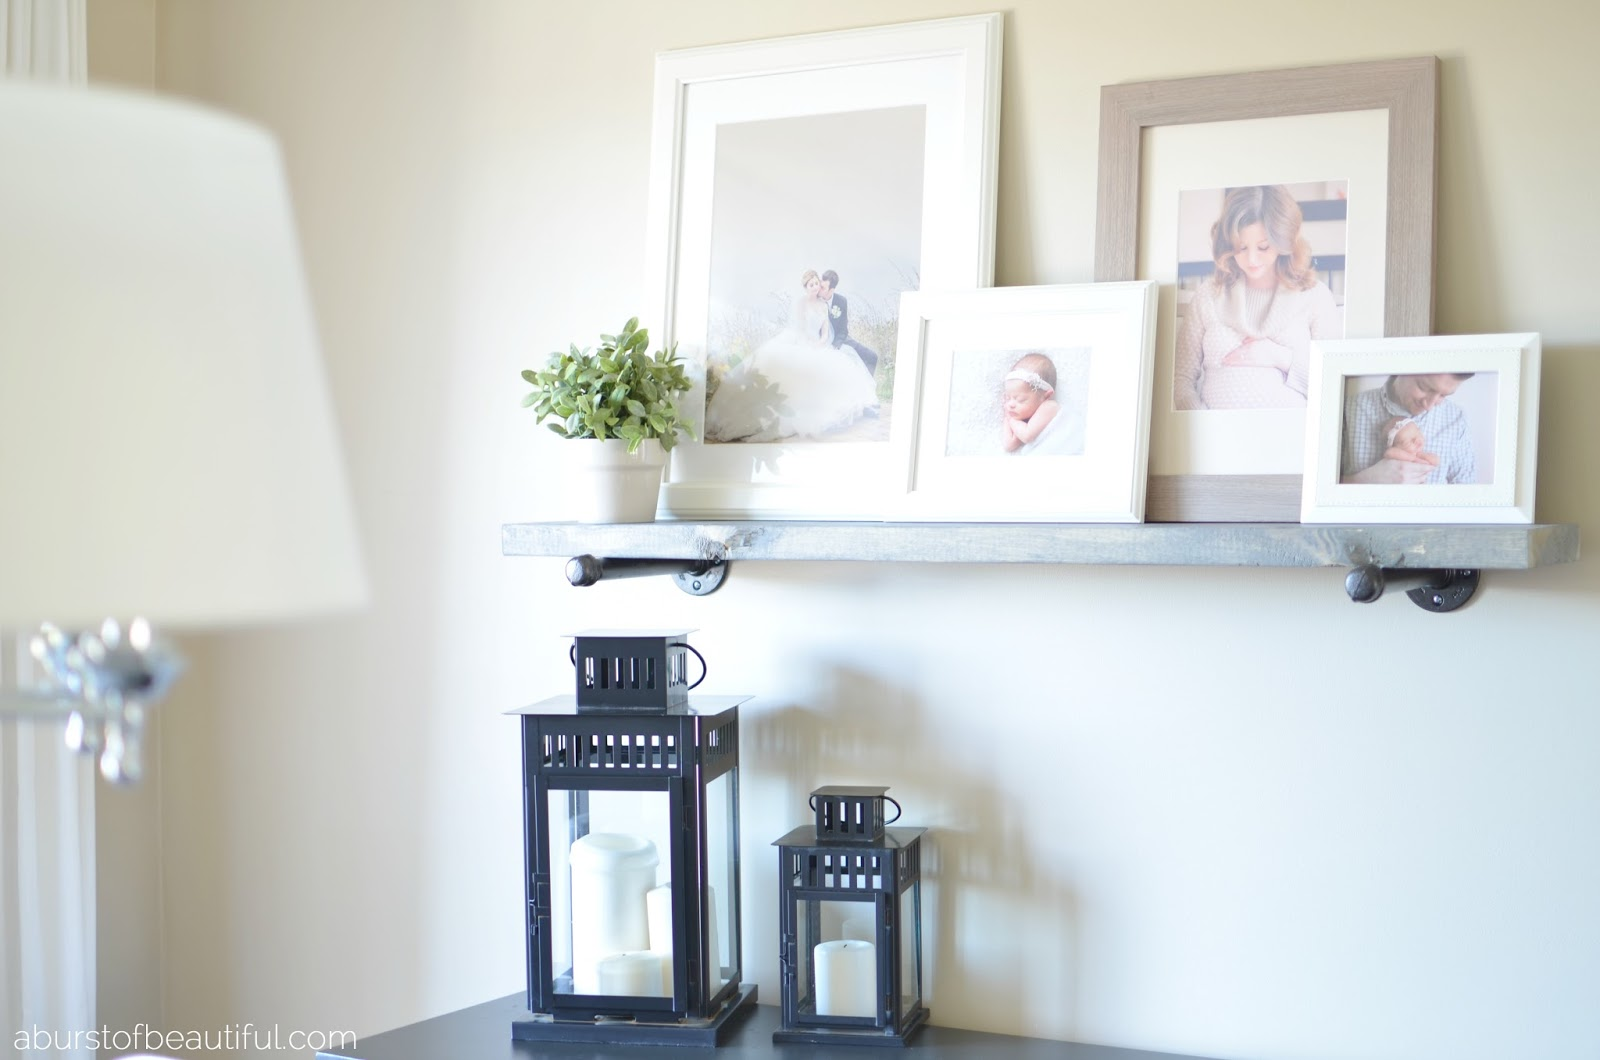 A Burst of Beautiful - DIY Industrial Shelf